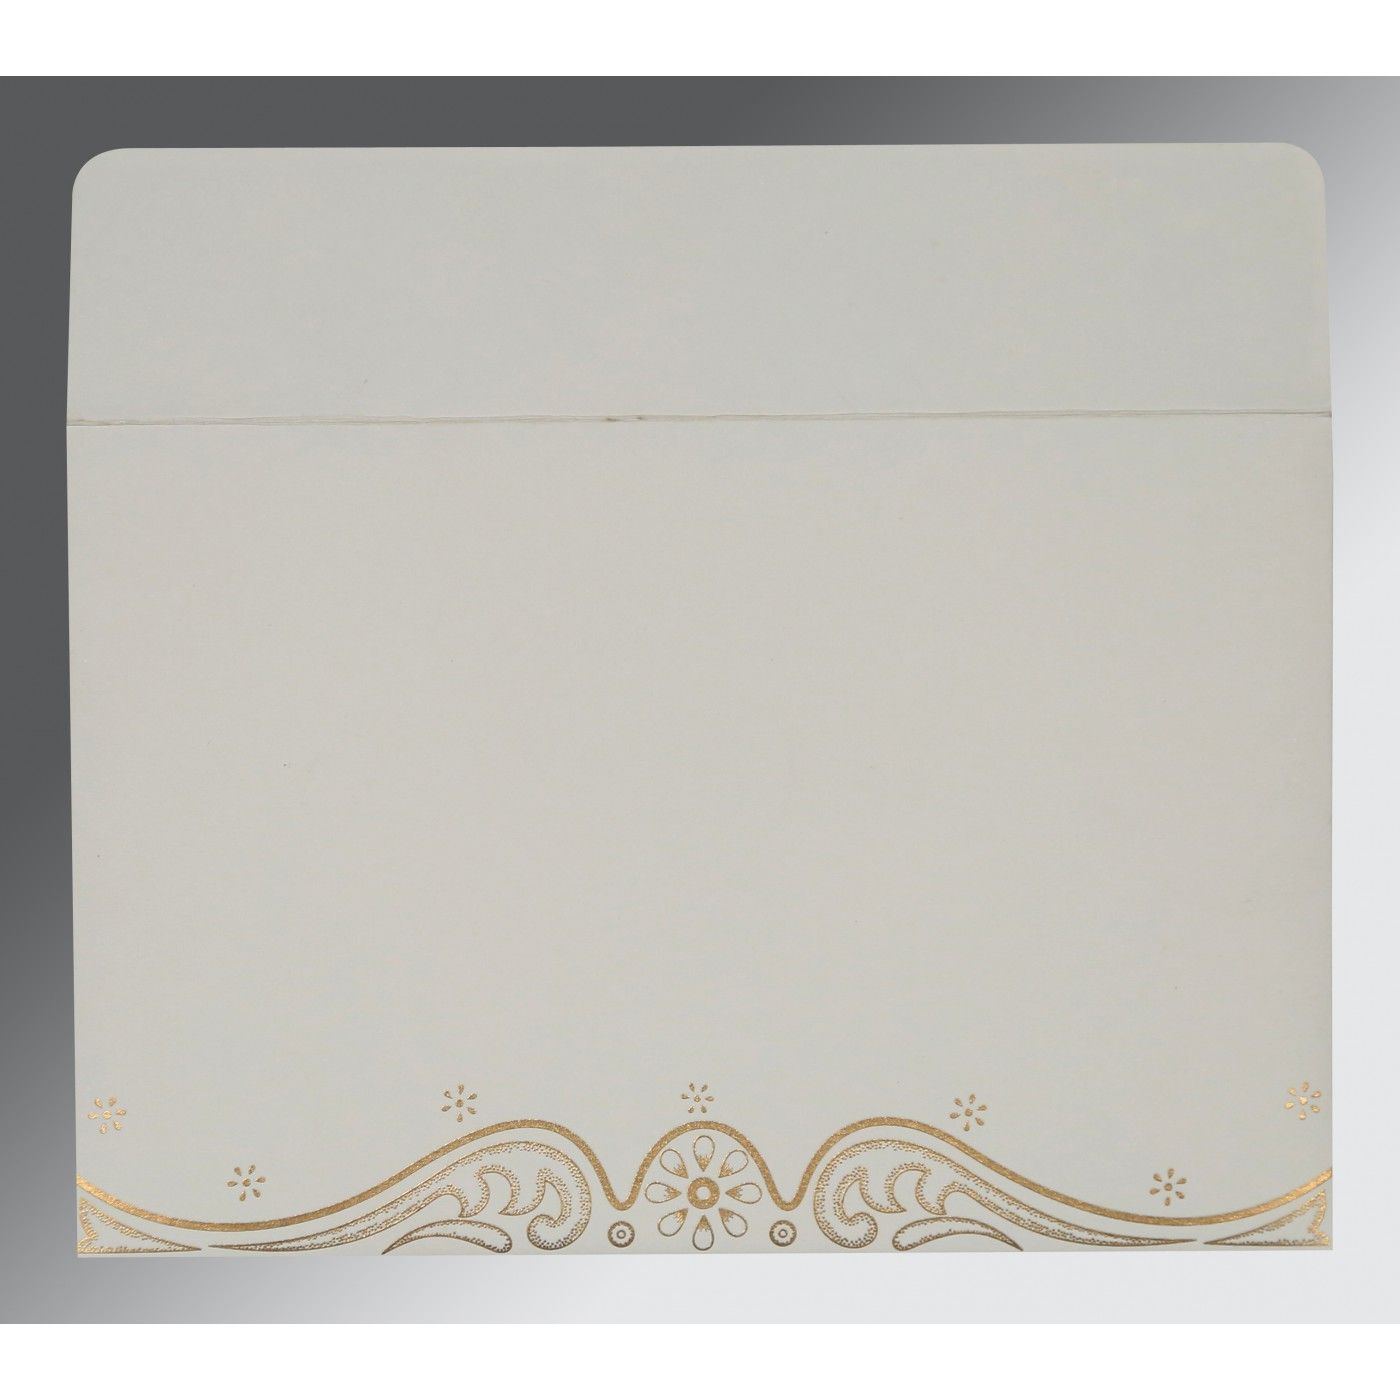 CHAMOISEE MATTE EMBOSSED WEDDING INVITATION : CD-8221I - IndianWeddingCards